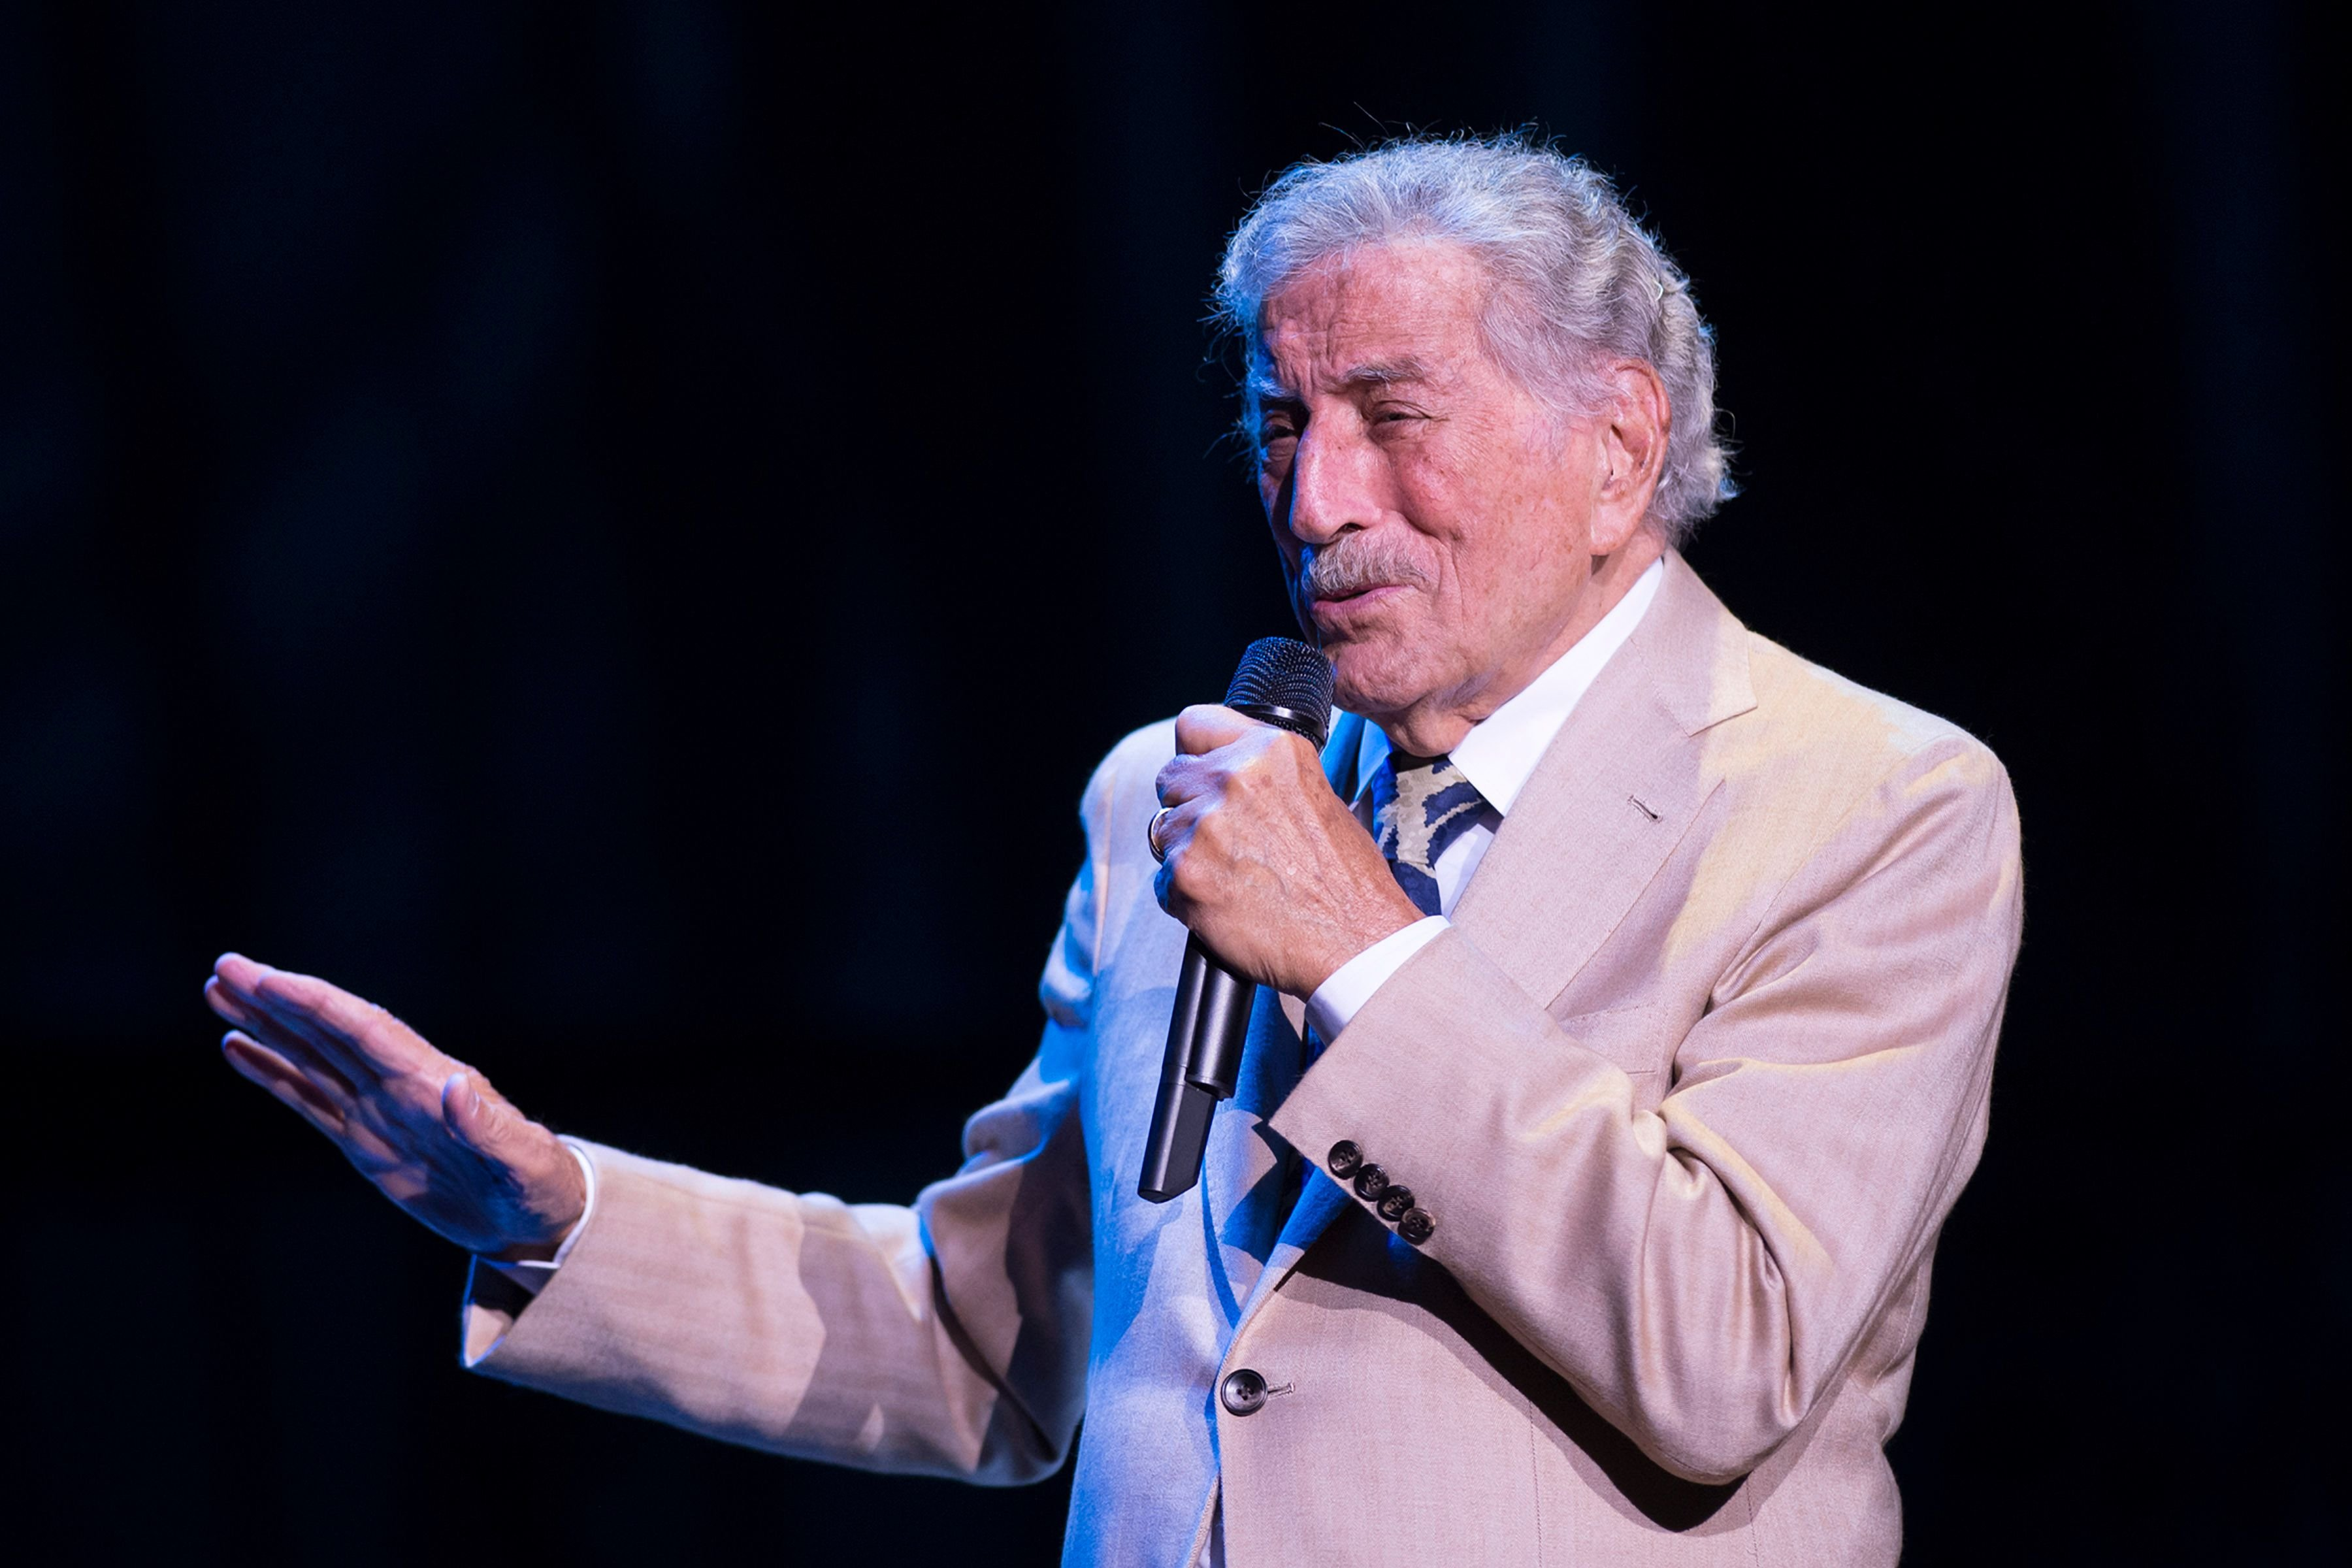 Tony Bennett performs on stage at Royal Albert Hall on June 28, 2019 in London, England.   Photo: Getty Images